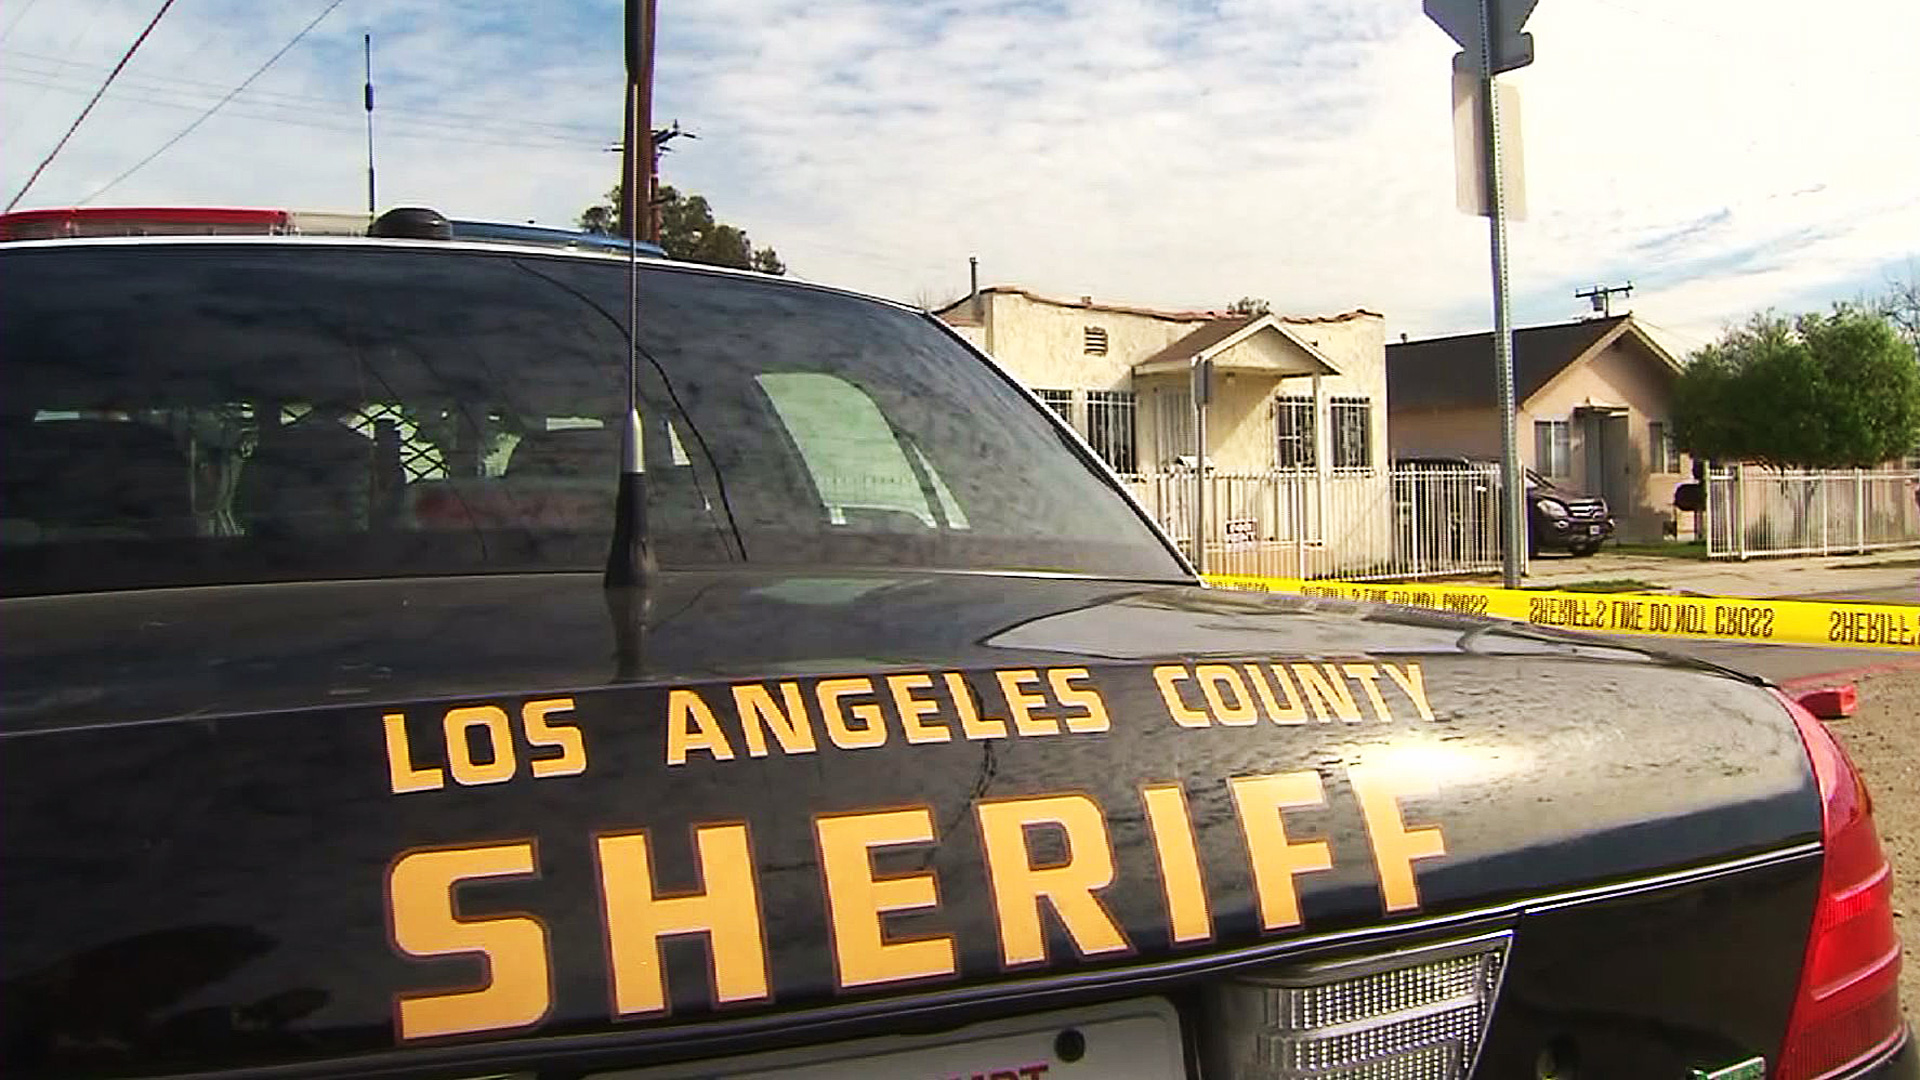 A Los Angeles County Sheriff's Department patrol car is seen in this file photo. (Credit: KTLA)